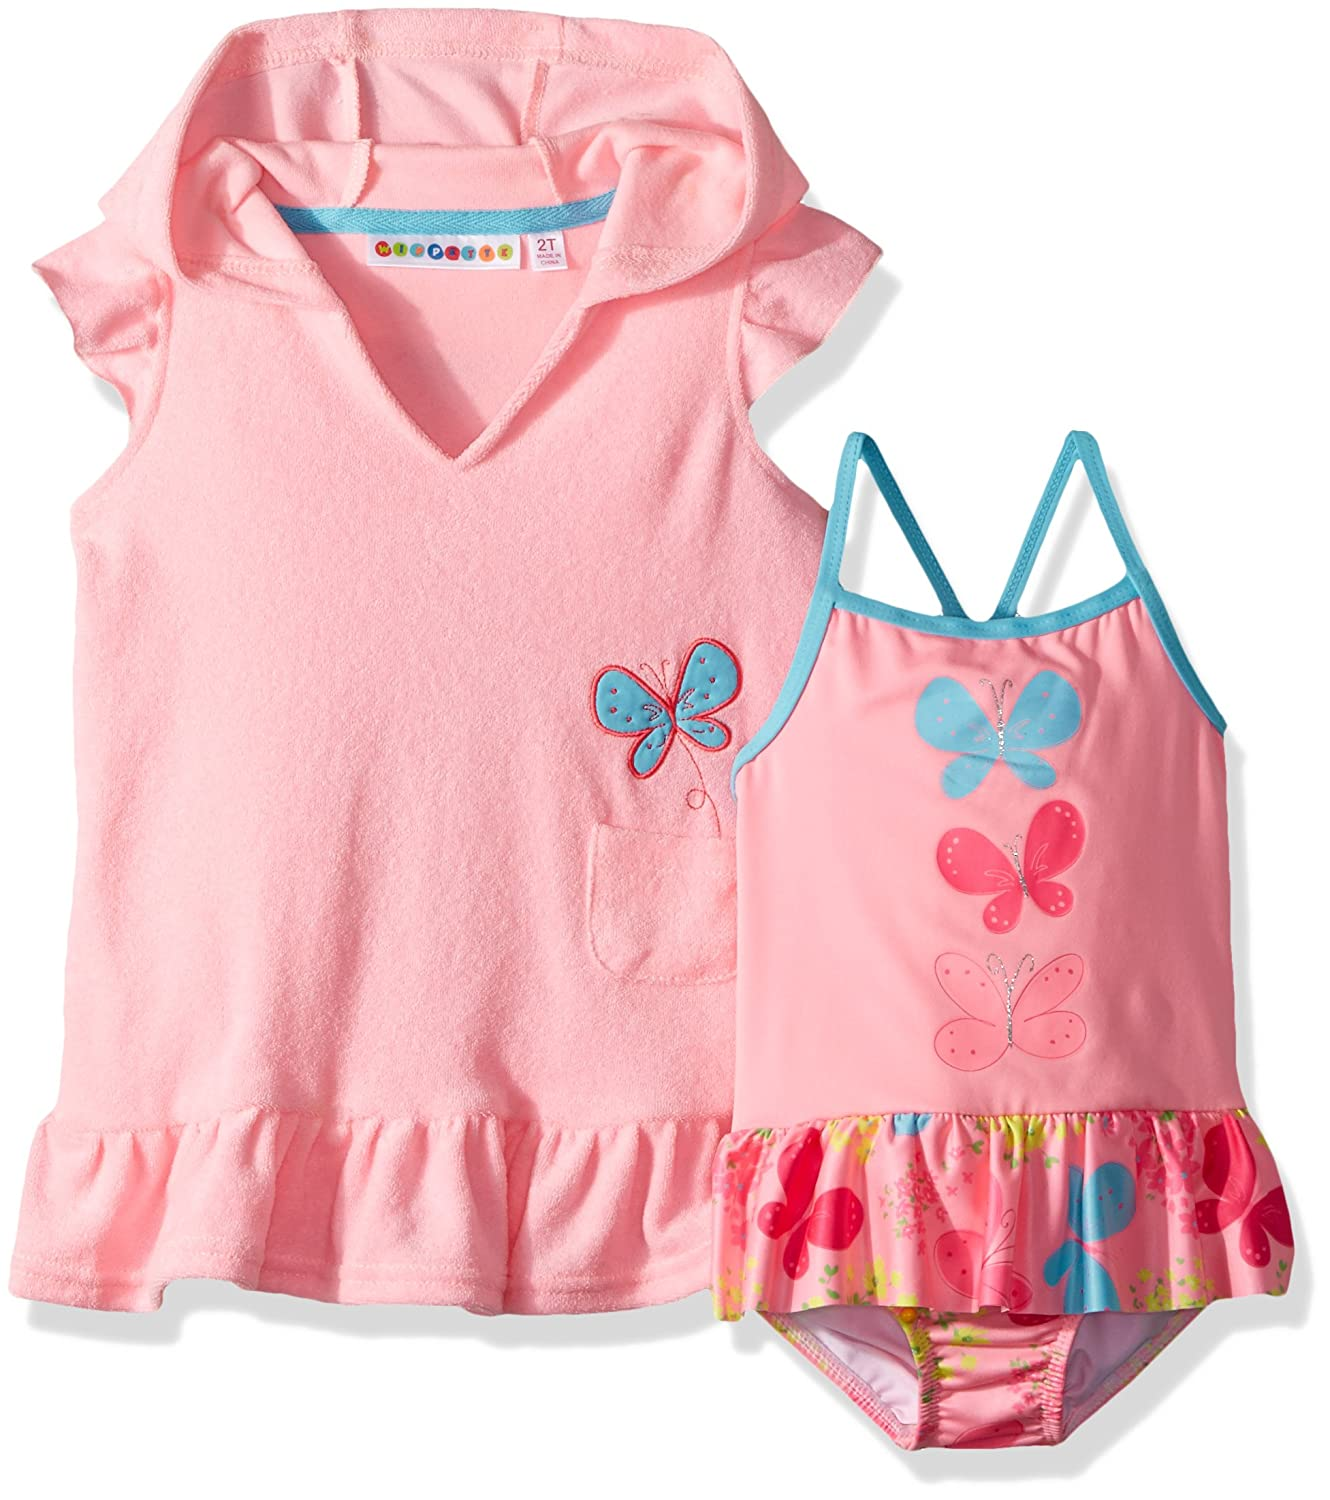 Wippette Girls' Toddler Coverup Set with Butterflies WG709224-CTN